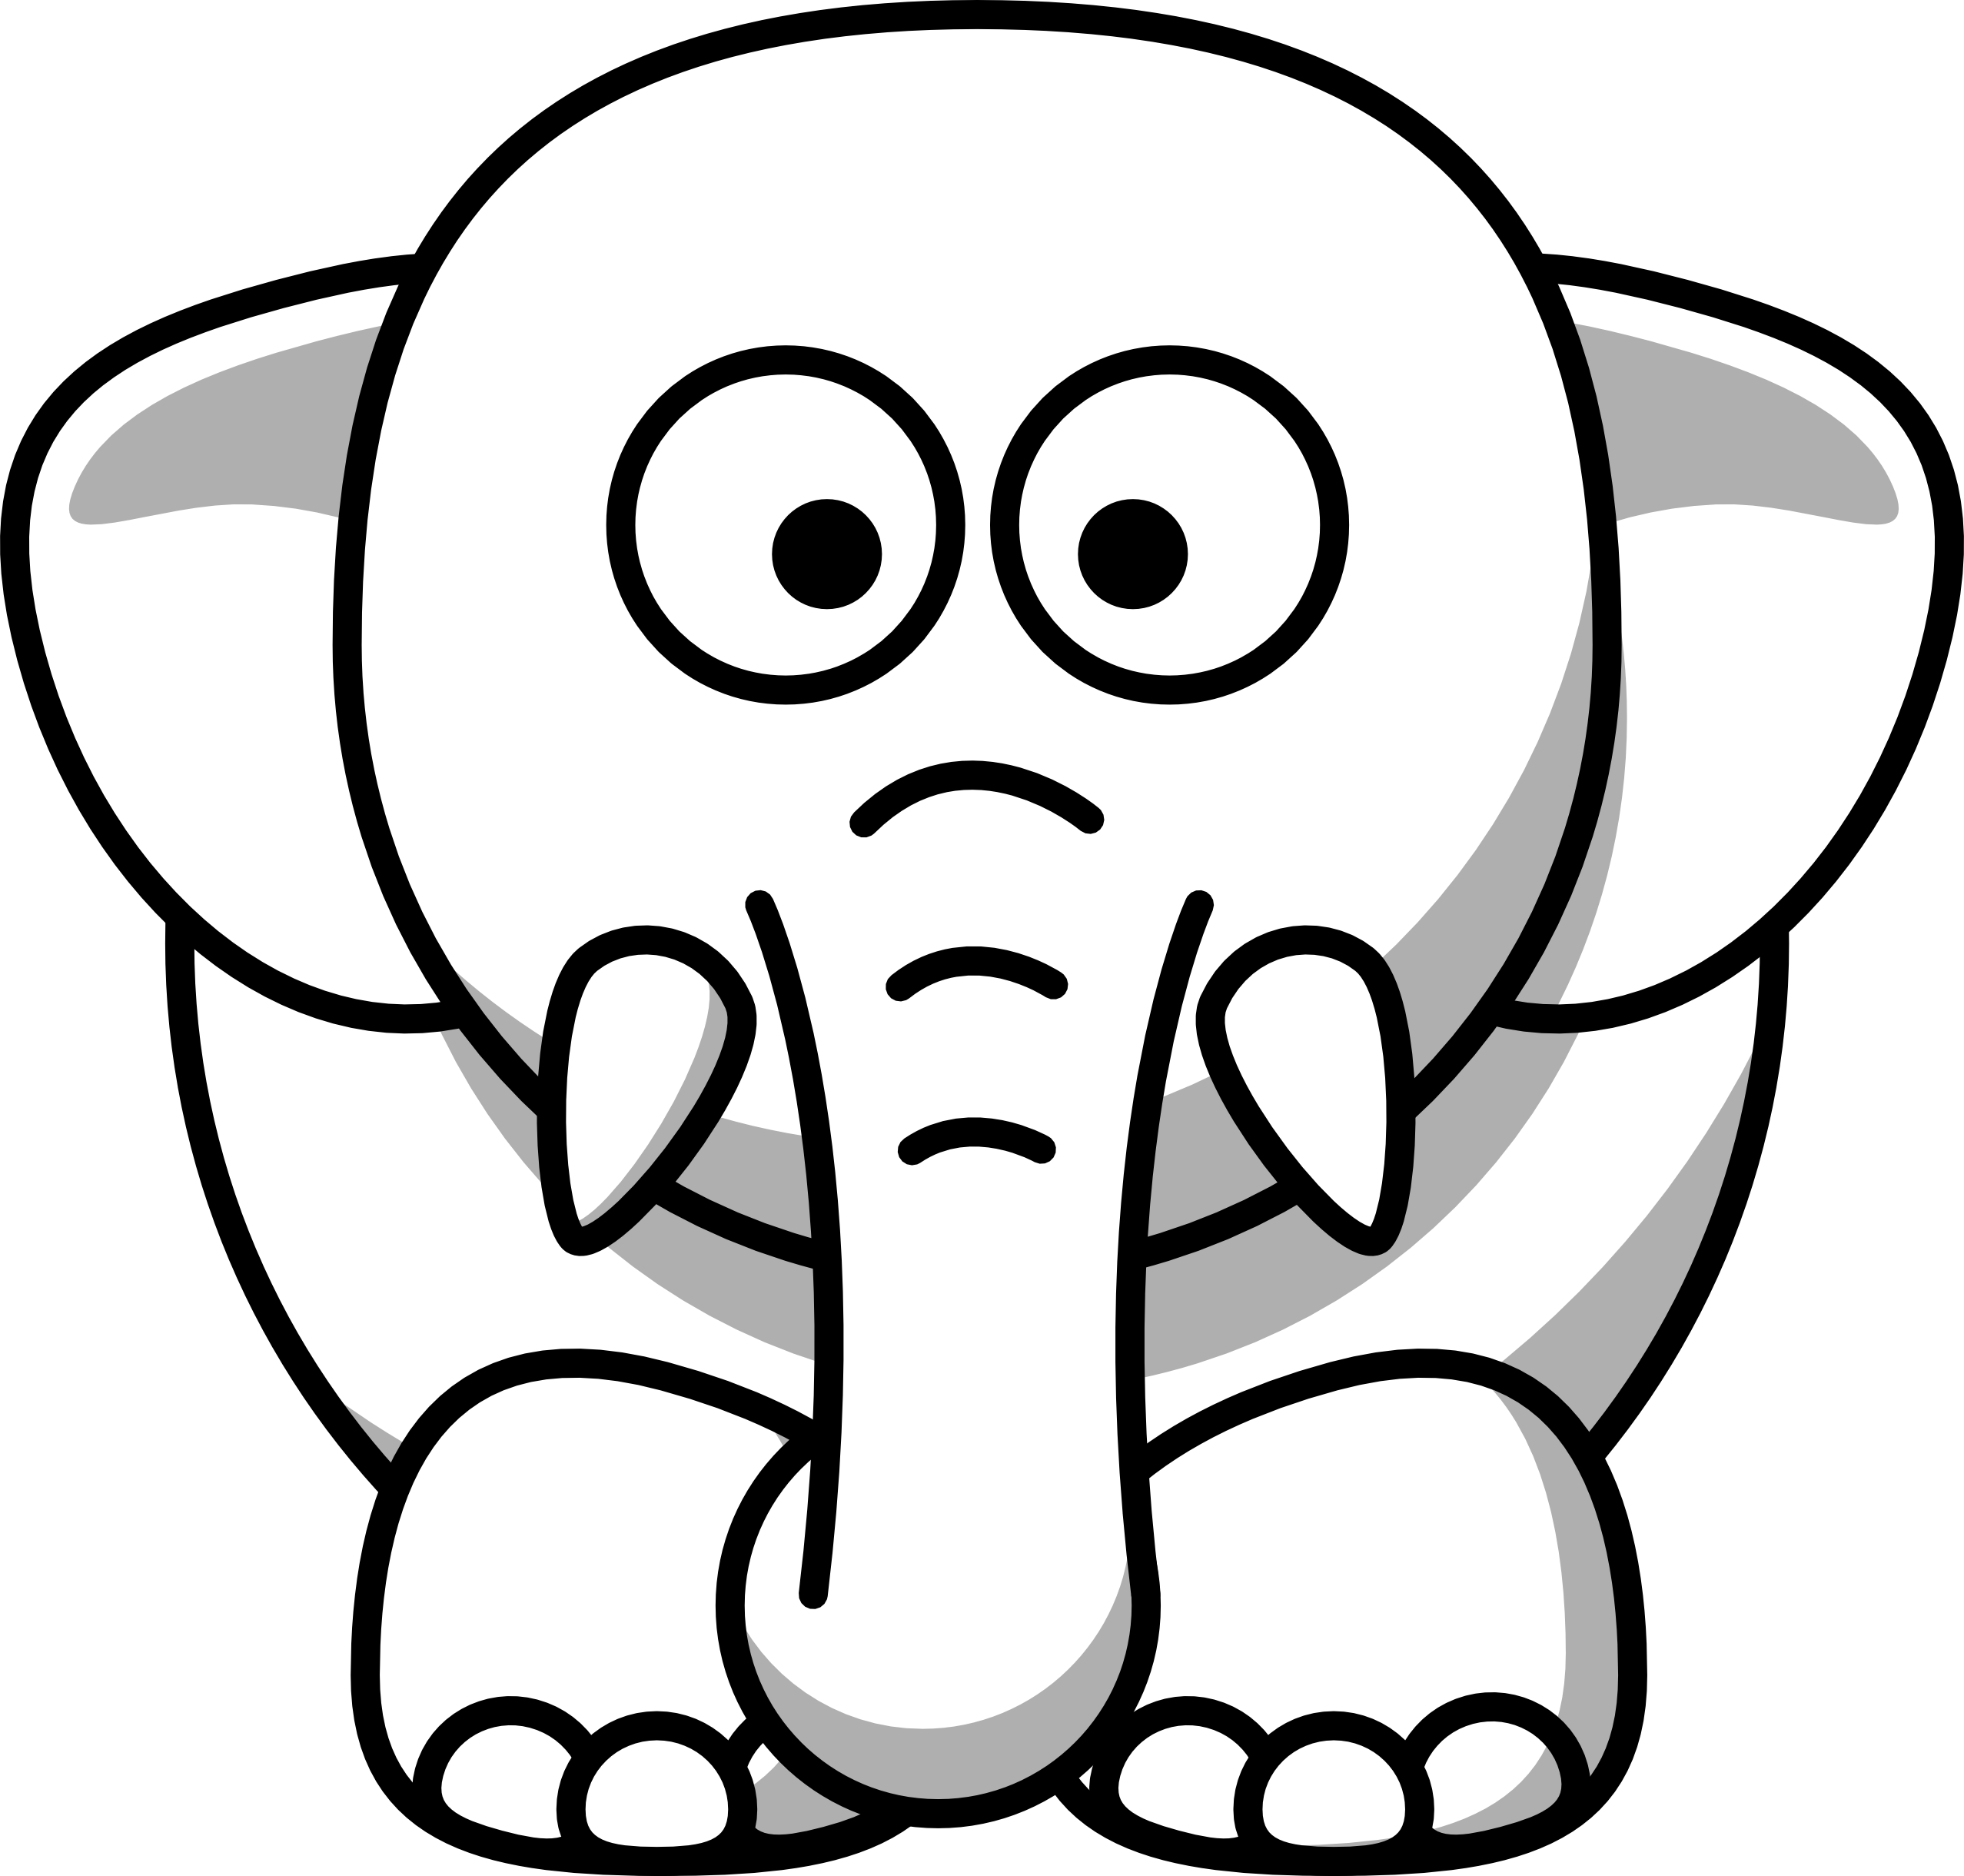 Black & White clipart #5, Download drawings